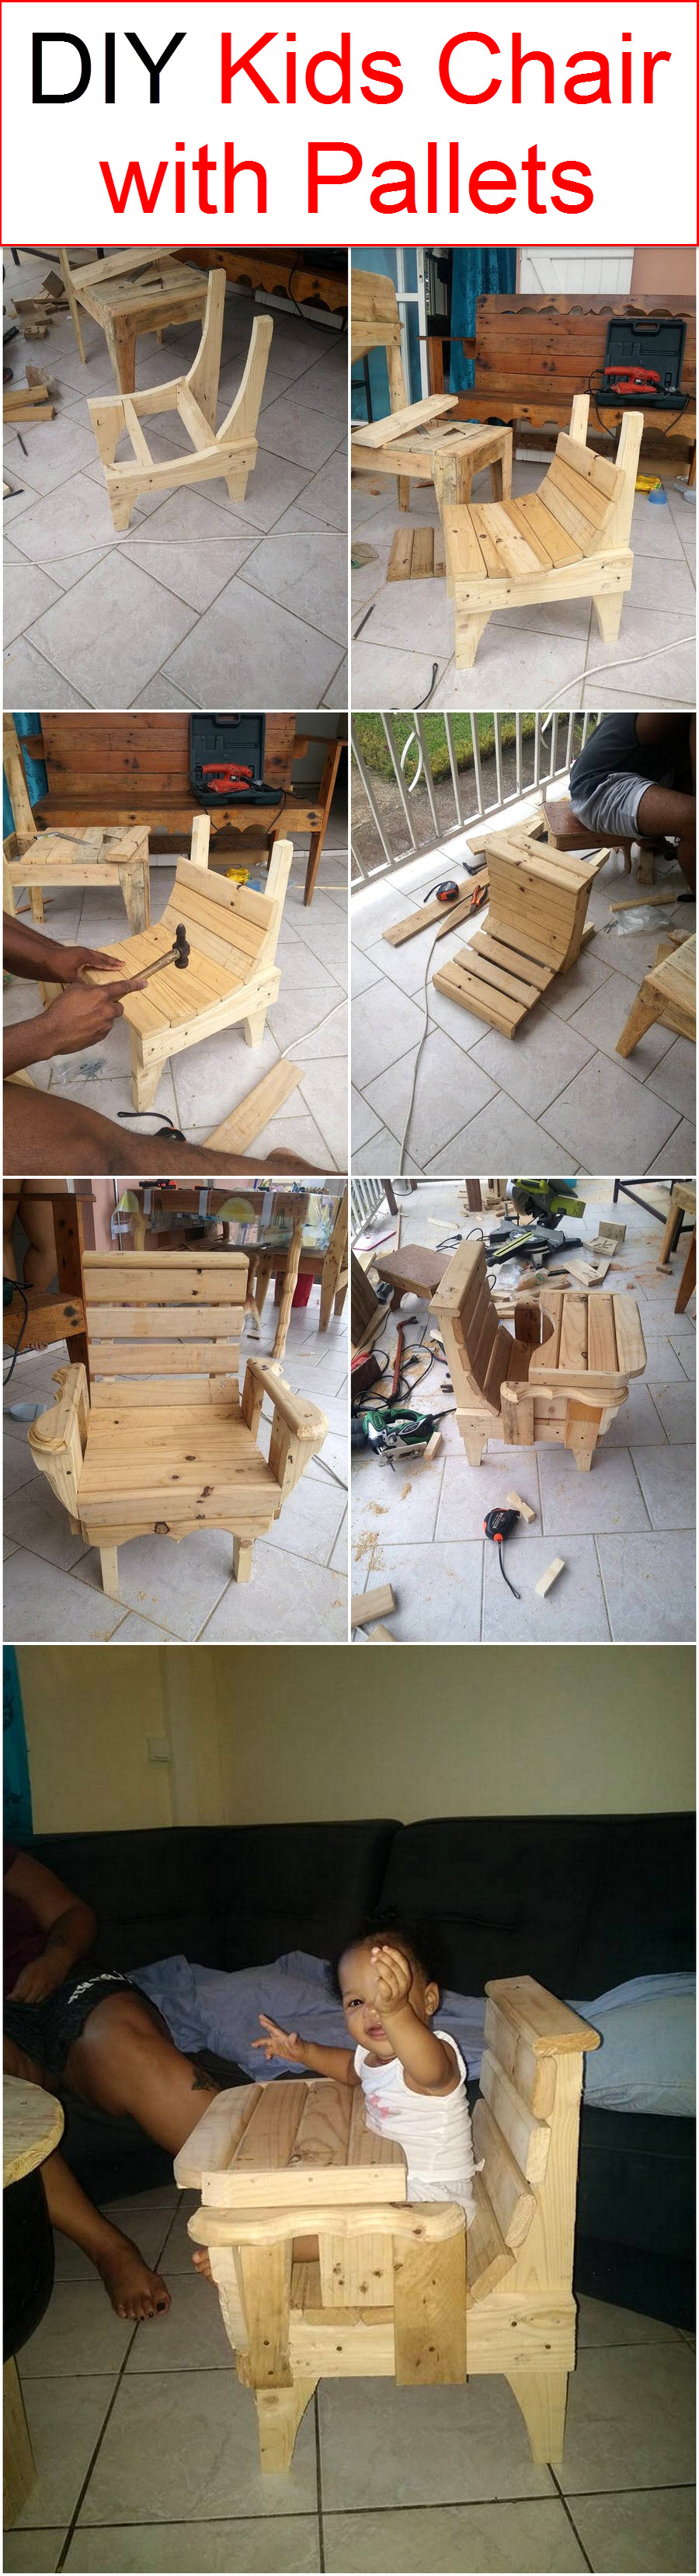 Peachy Diy Kids Chair With Pallets Wood Pallet Furniture Caraccident5 Cool Chair Designs And Ideas Caraccident5Info